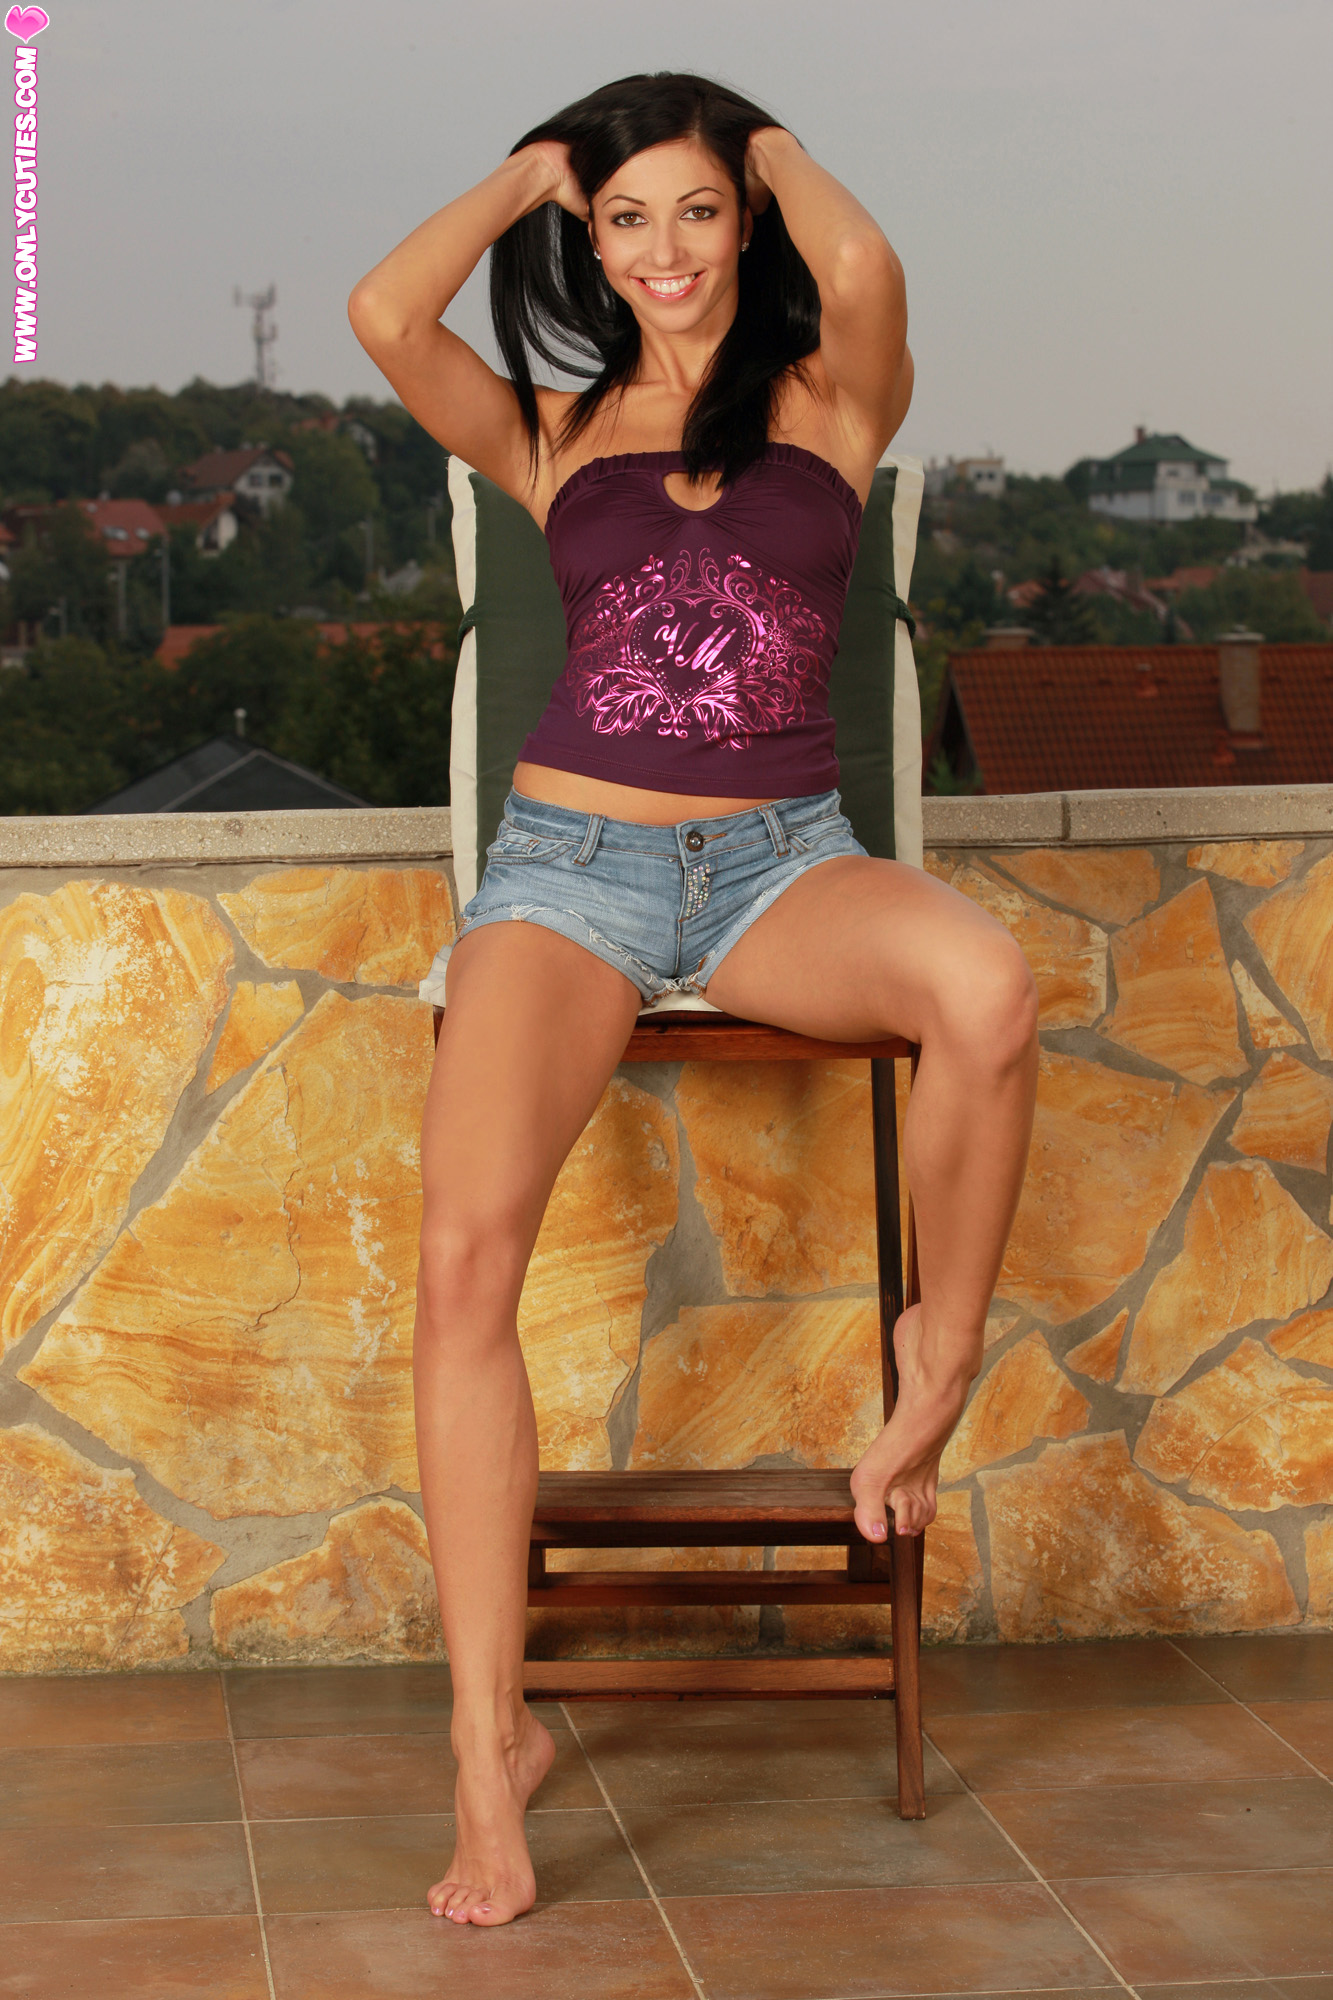 Amazing chick seduces herself with her fingers